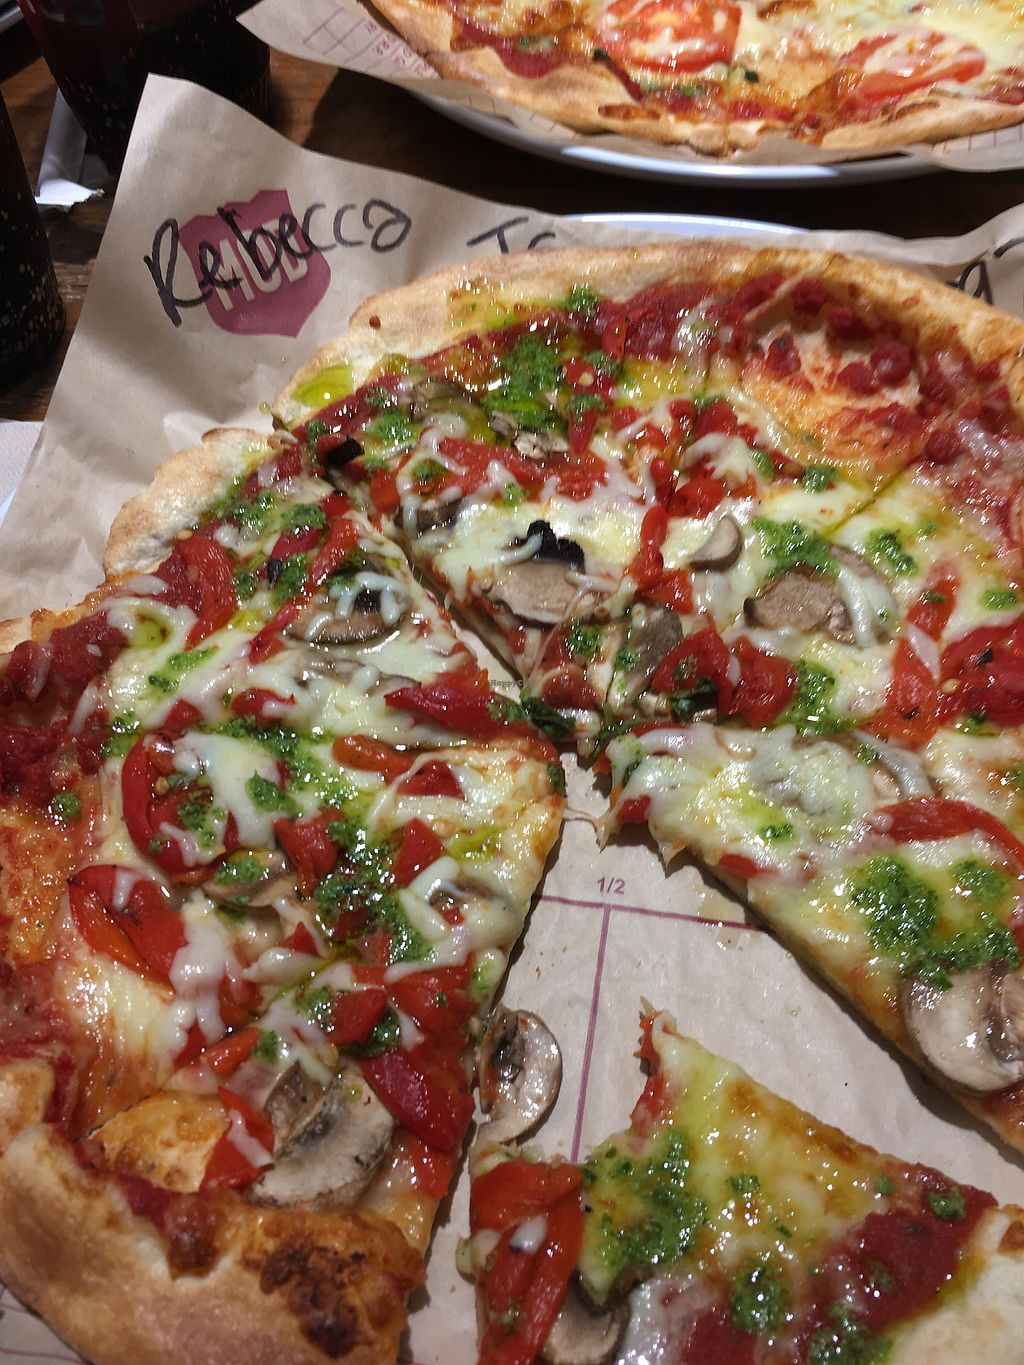 """Photo of Mod Pizza  by <a href=""""/members/profile/BeckyOllier"""">BeckyOllier</a> <br/>Vegetarian pizza  <br/> September 16, 2017  - <a href='/contact/abuse/image/87201/305156'>Report</a>"""